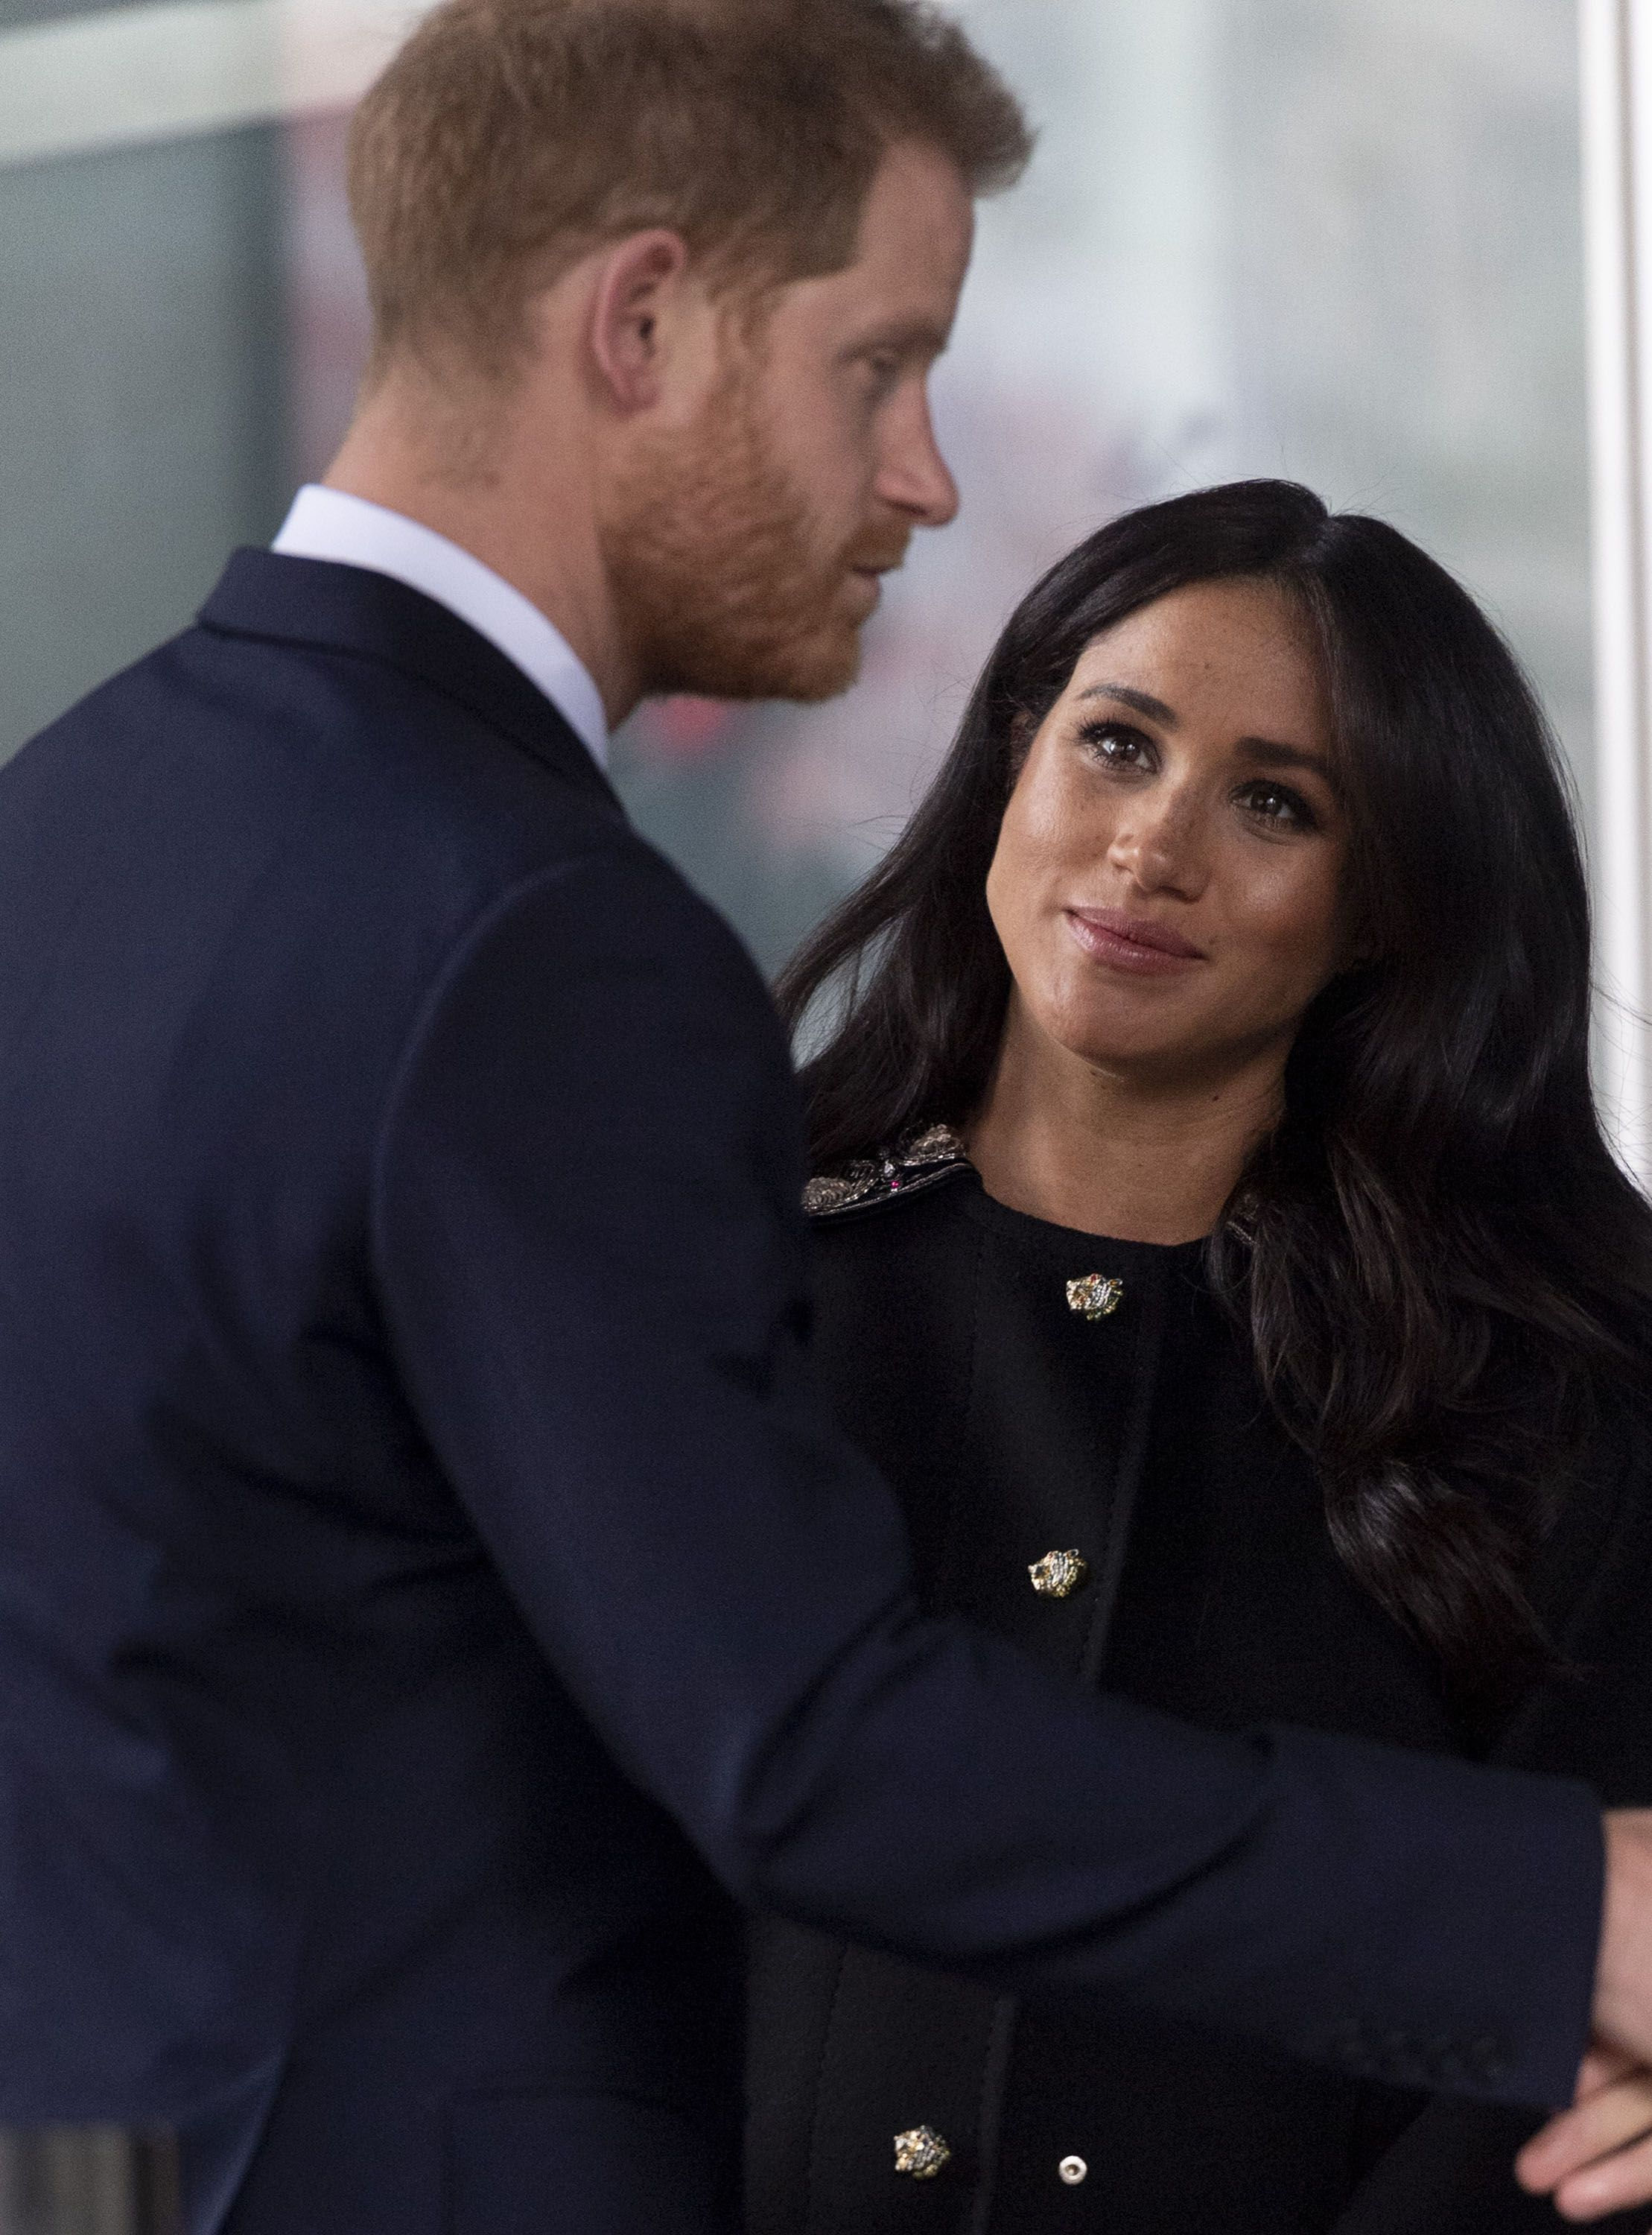 Prince Harry's Surprise Appearance Today Is a Huge Clue to Meghan Markle's Due Date